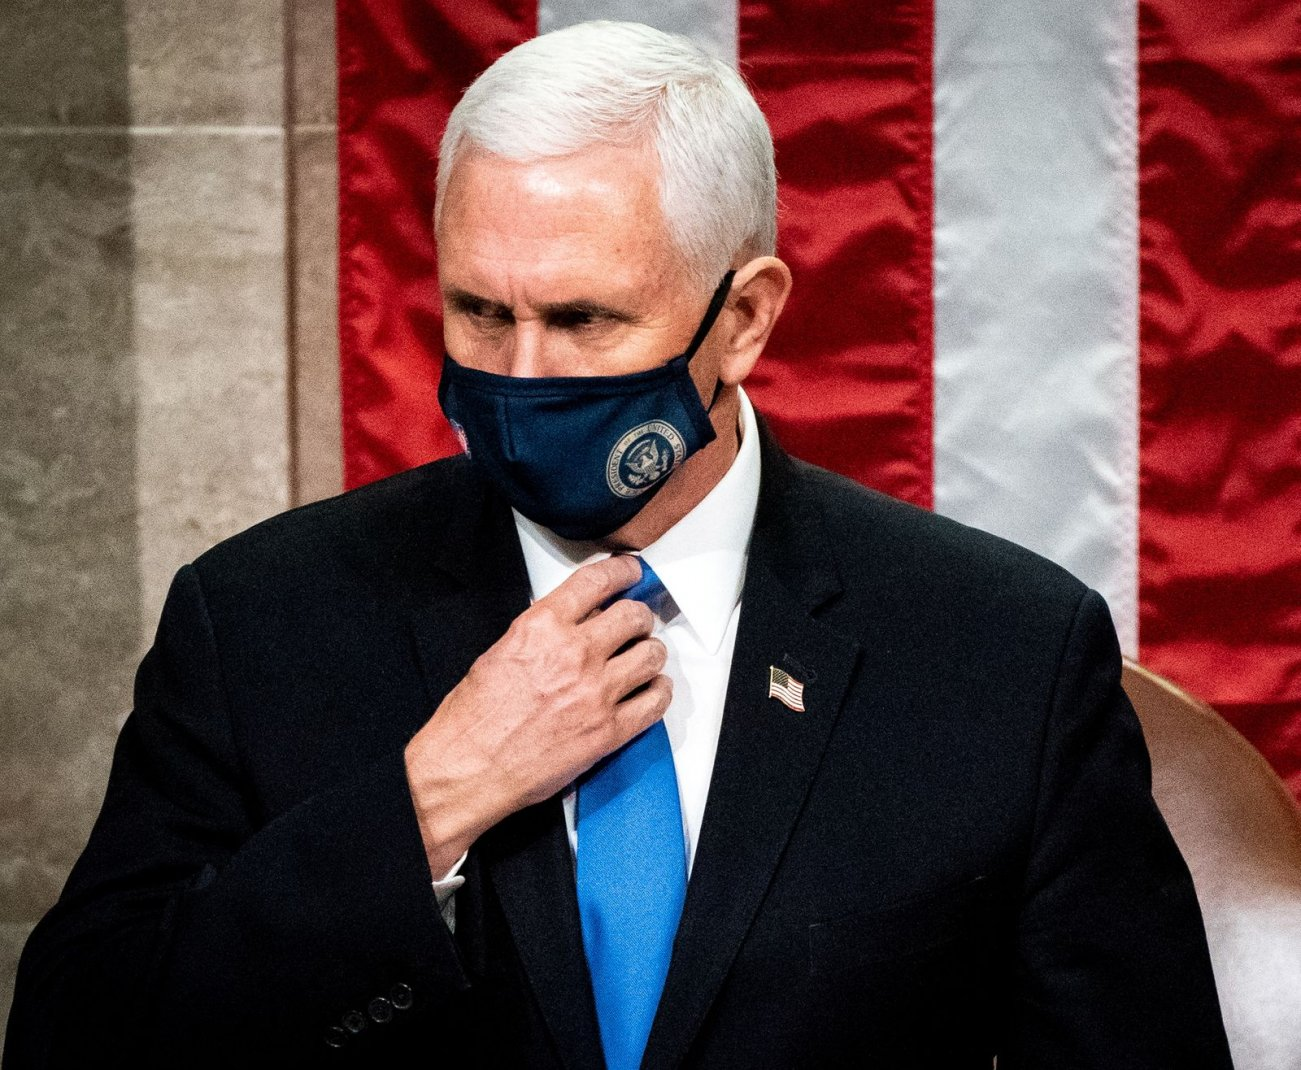 Mike Pence Might Be Getting Ready to Run for President